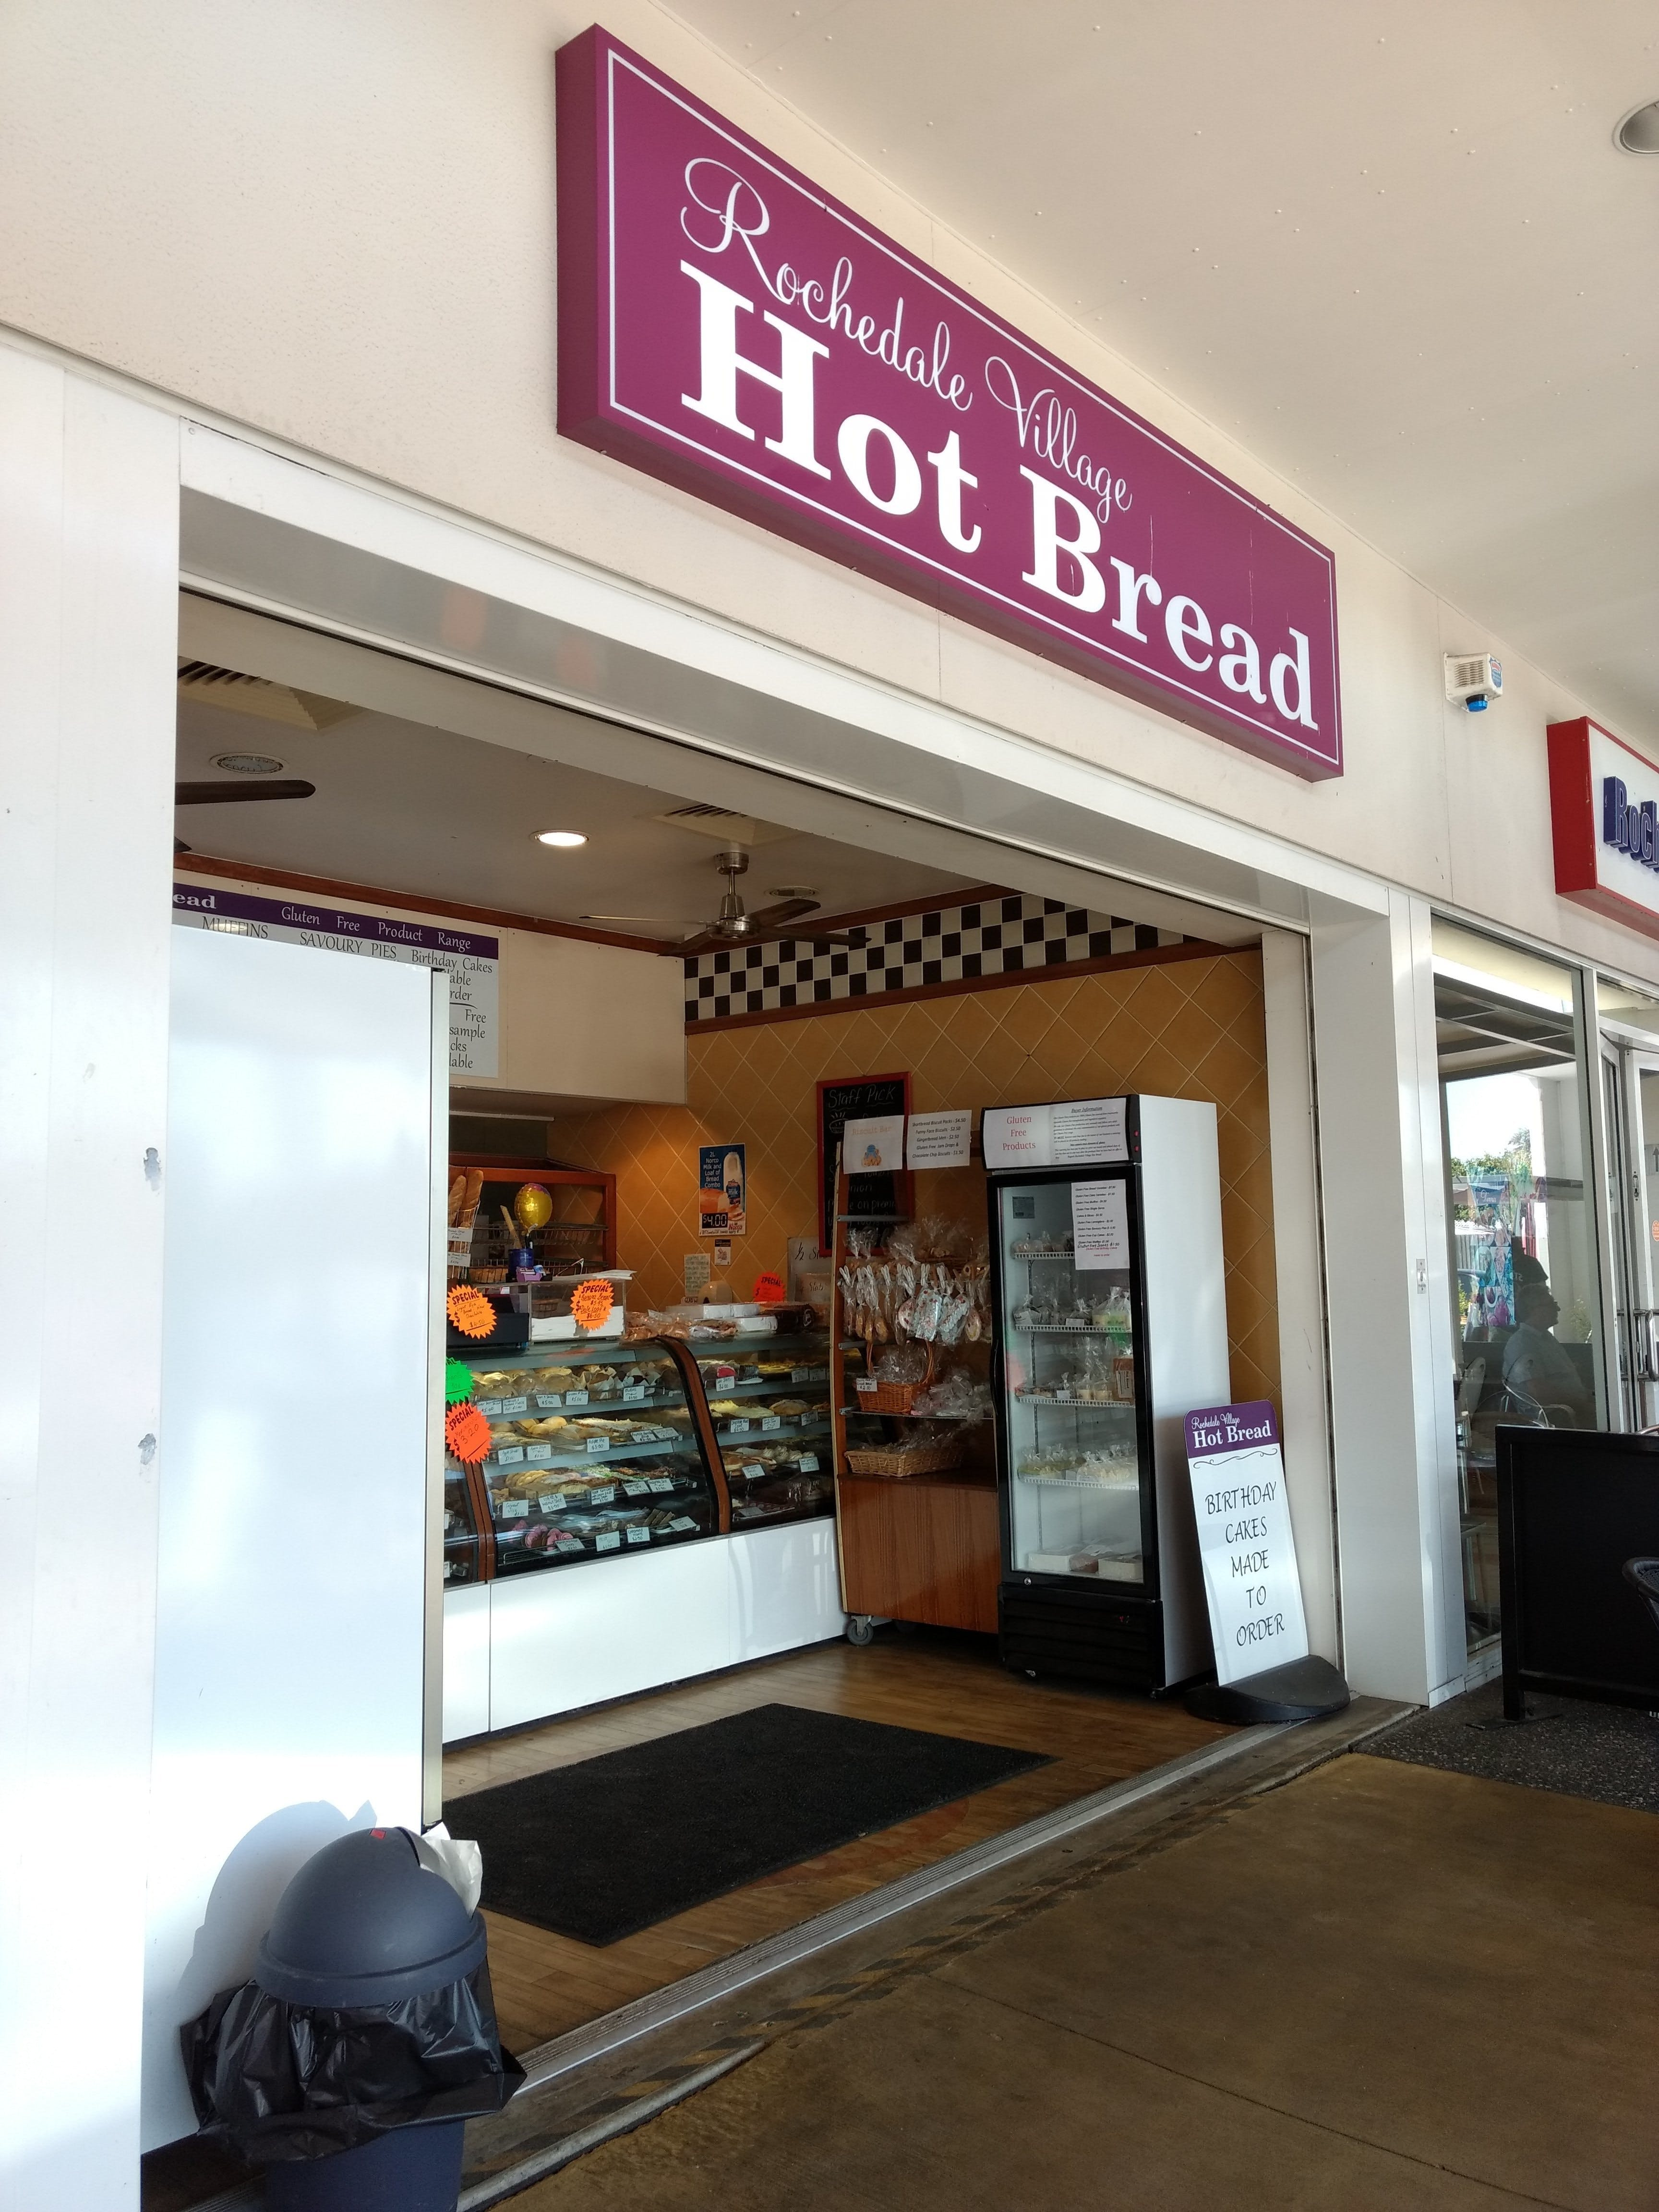 Rochedale Village Hot Bread - New South Wales Tourism